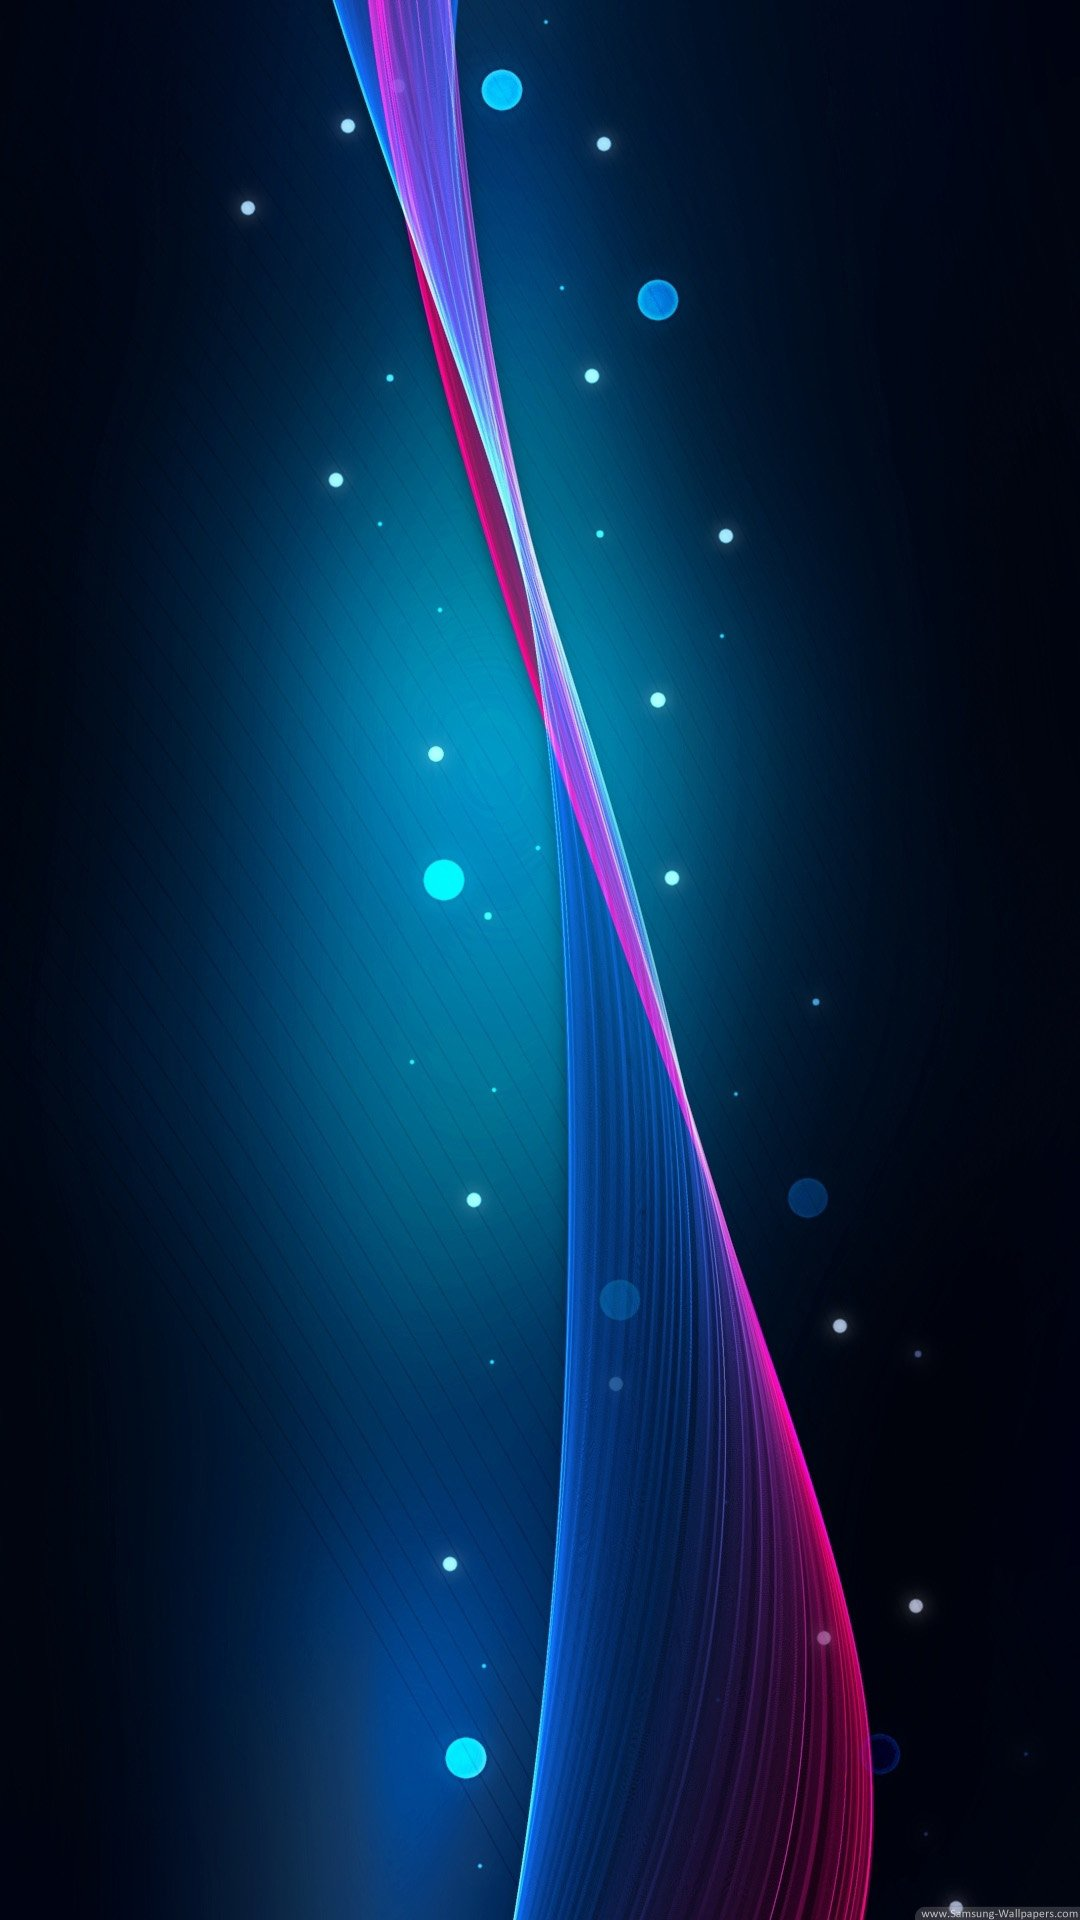 techagesitecom Wallpaper For Mobile 1080x1920